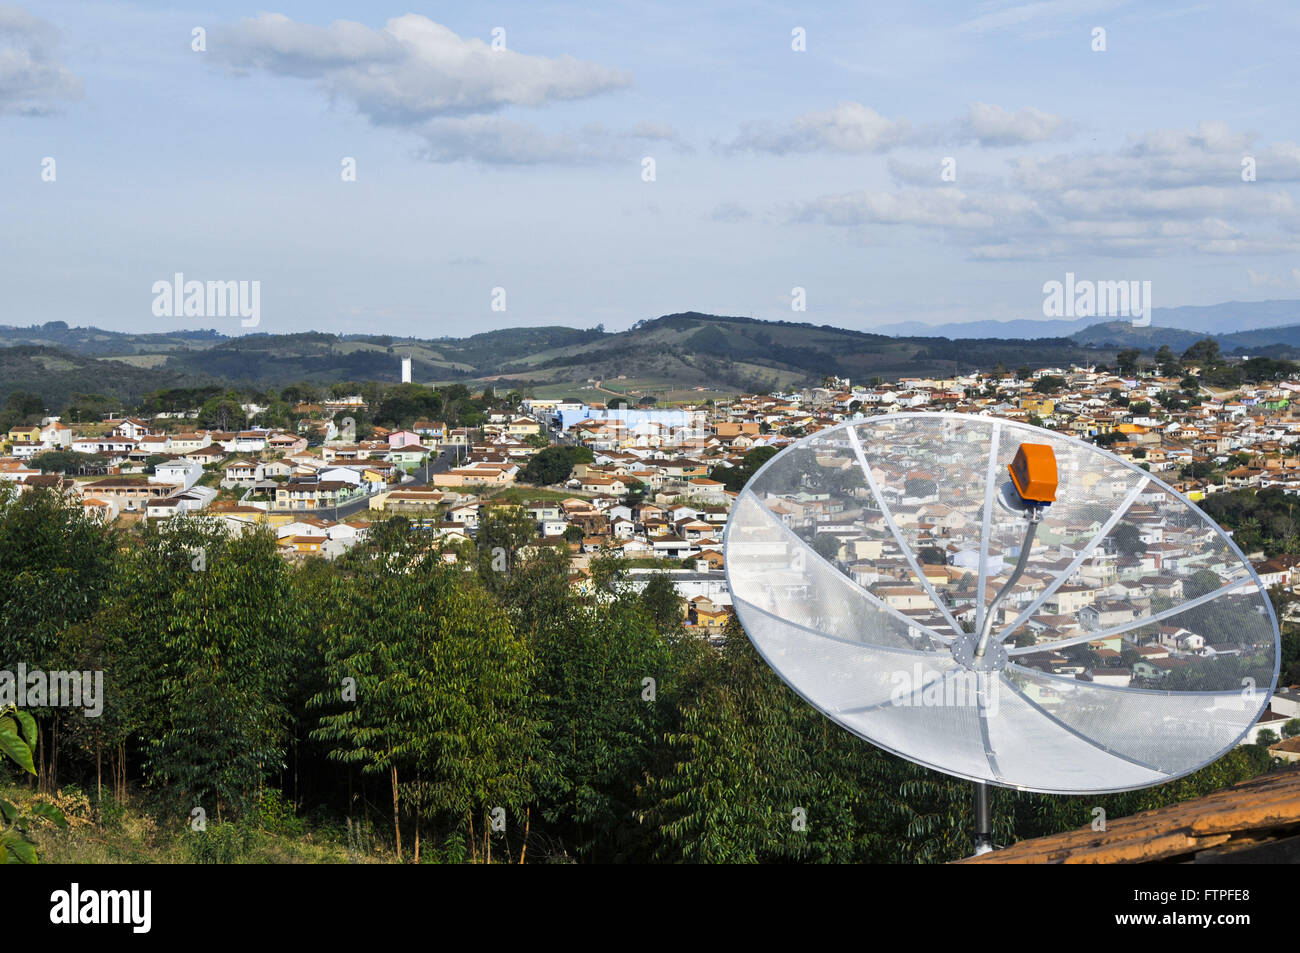 Highlight of parabolic antenna housing and city view in the background - Stock Image